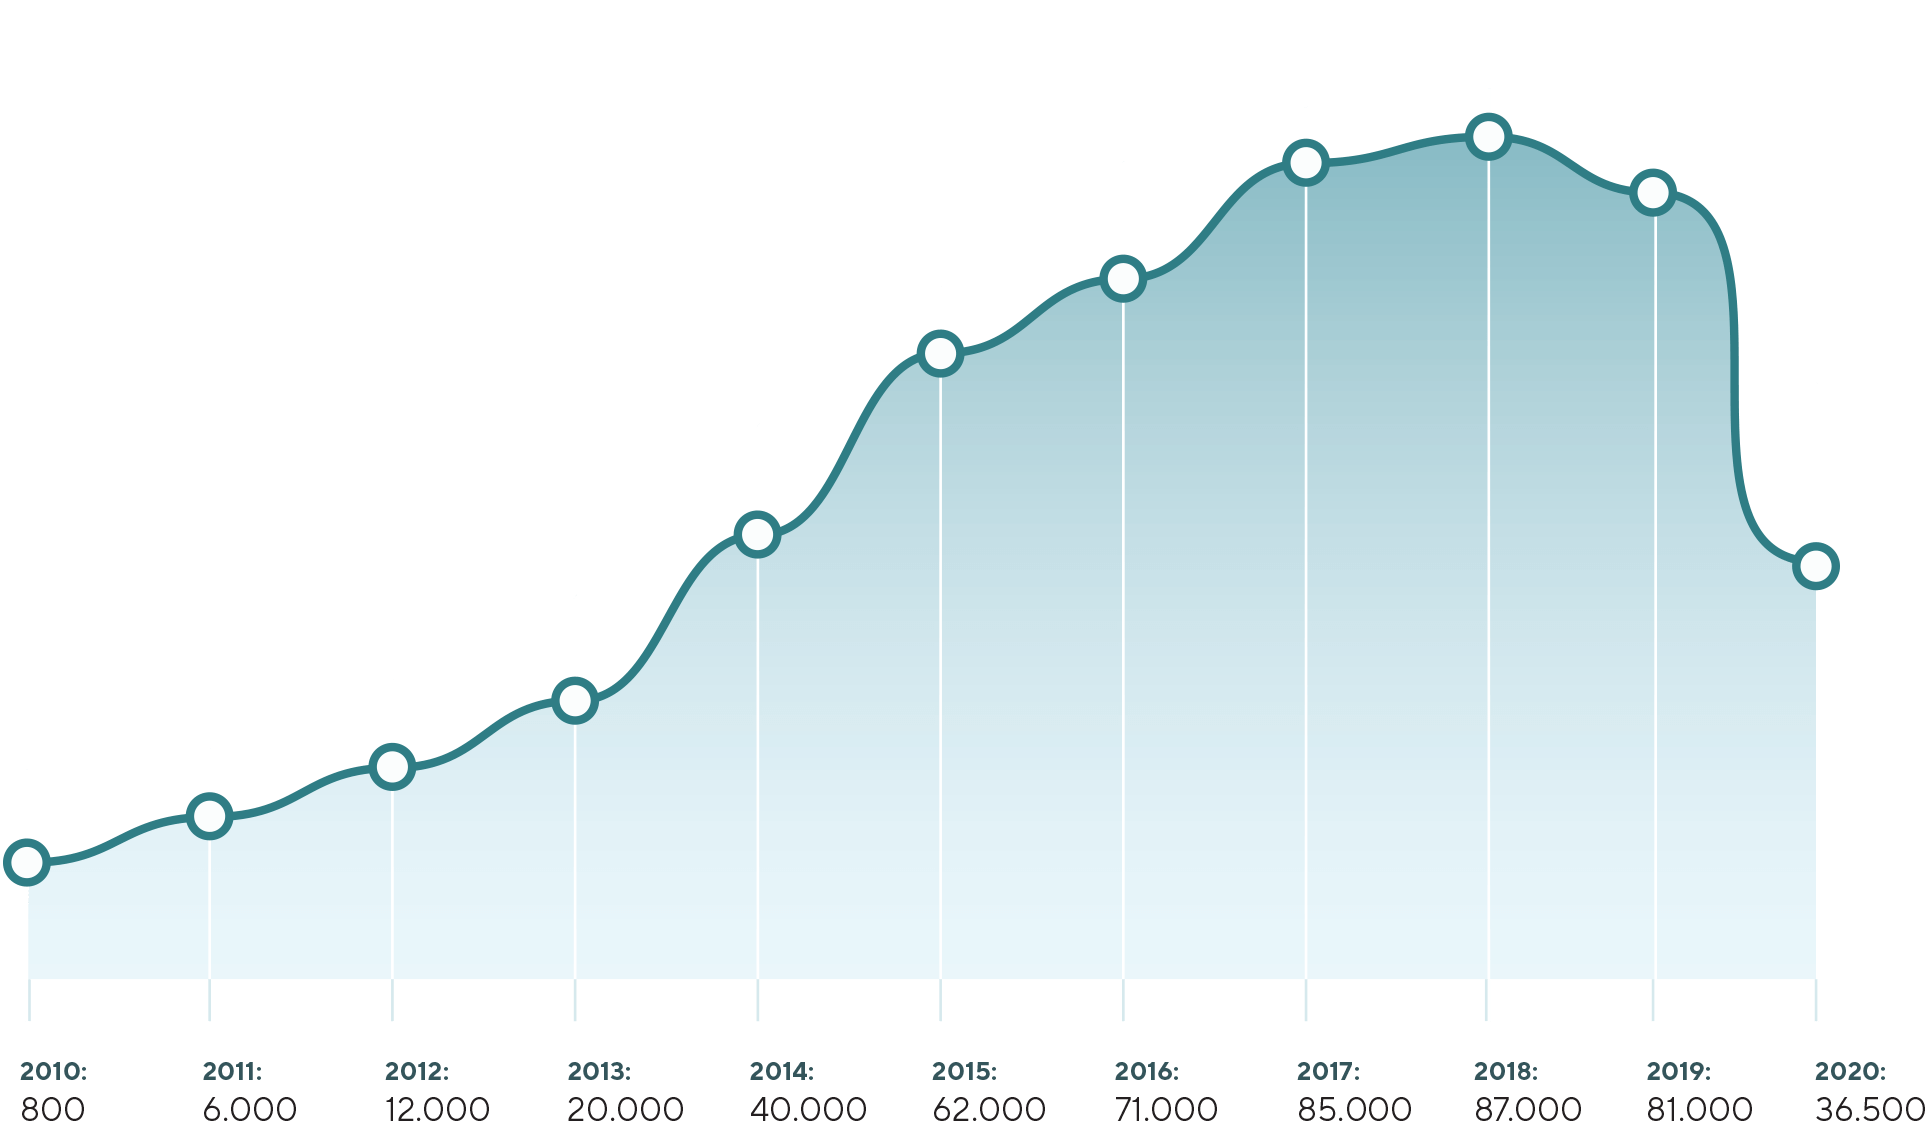 Graph showing visiting numbers from 2010 (800) to 2020 (36500)